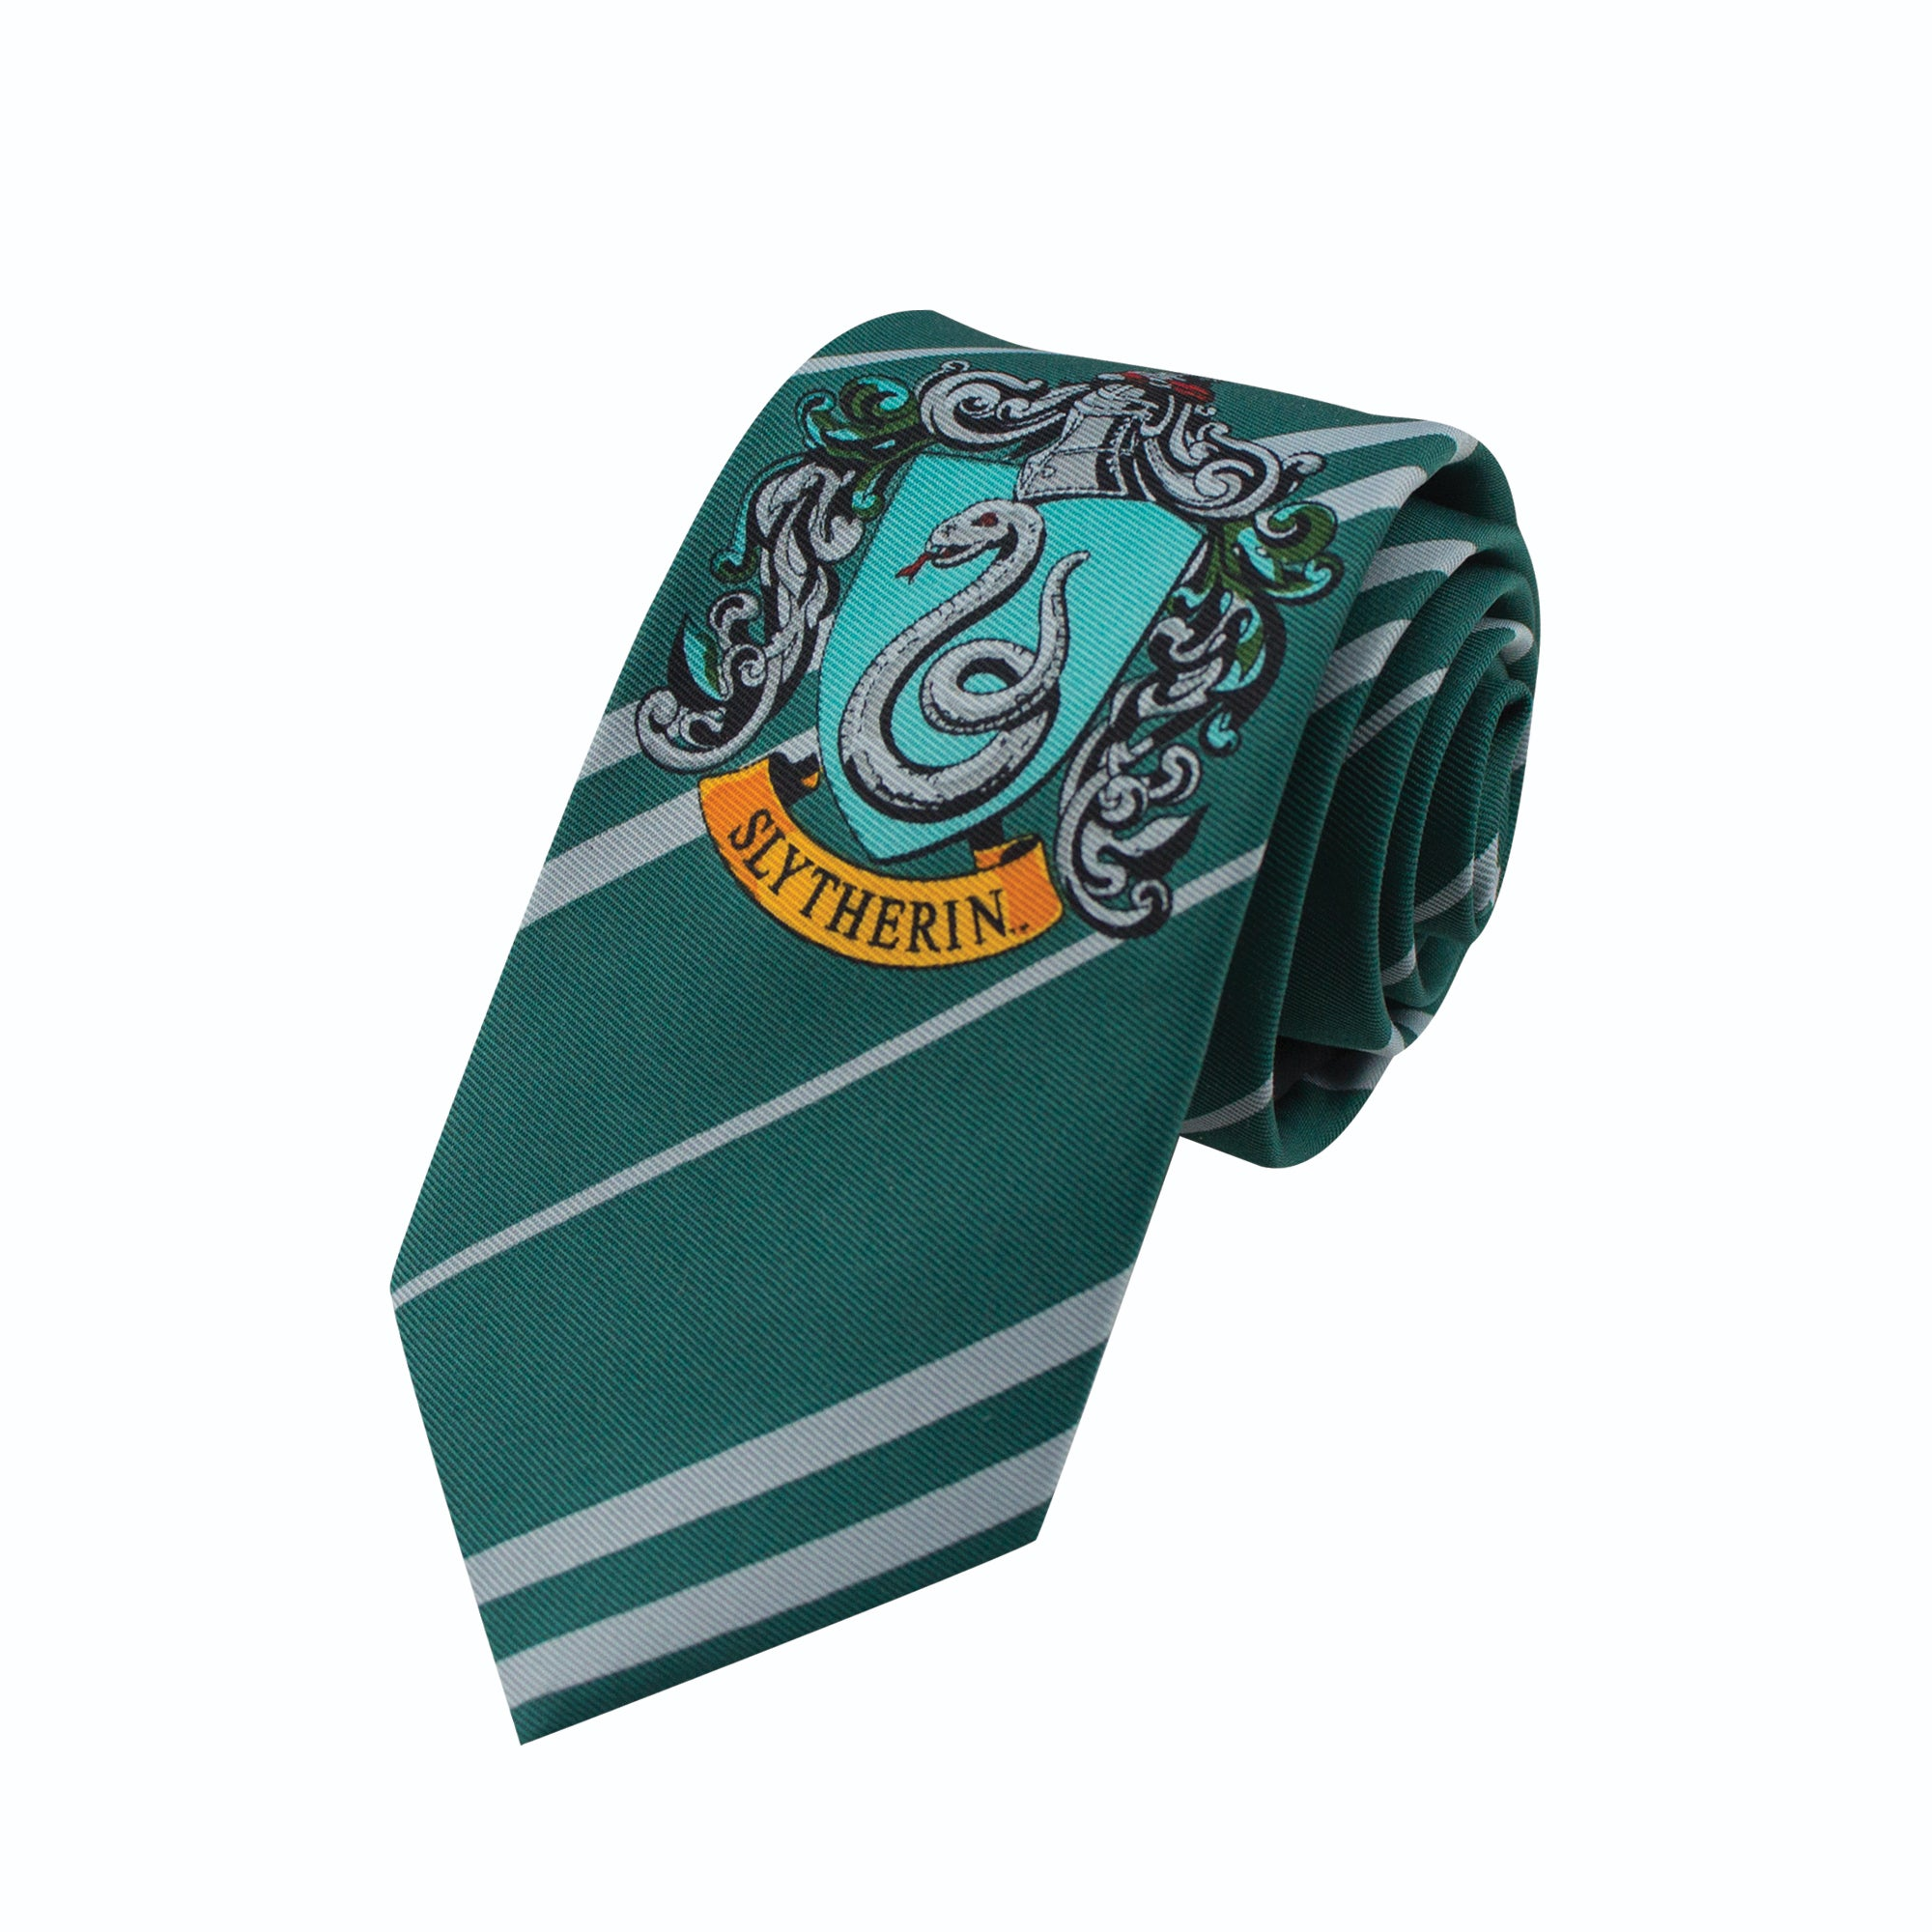 CNR - Corbata Harry Potter Slytherin Niño